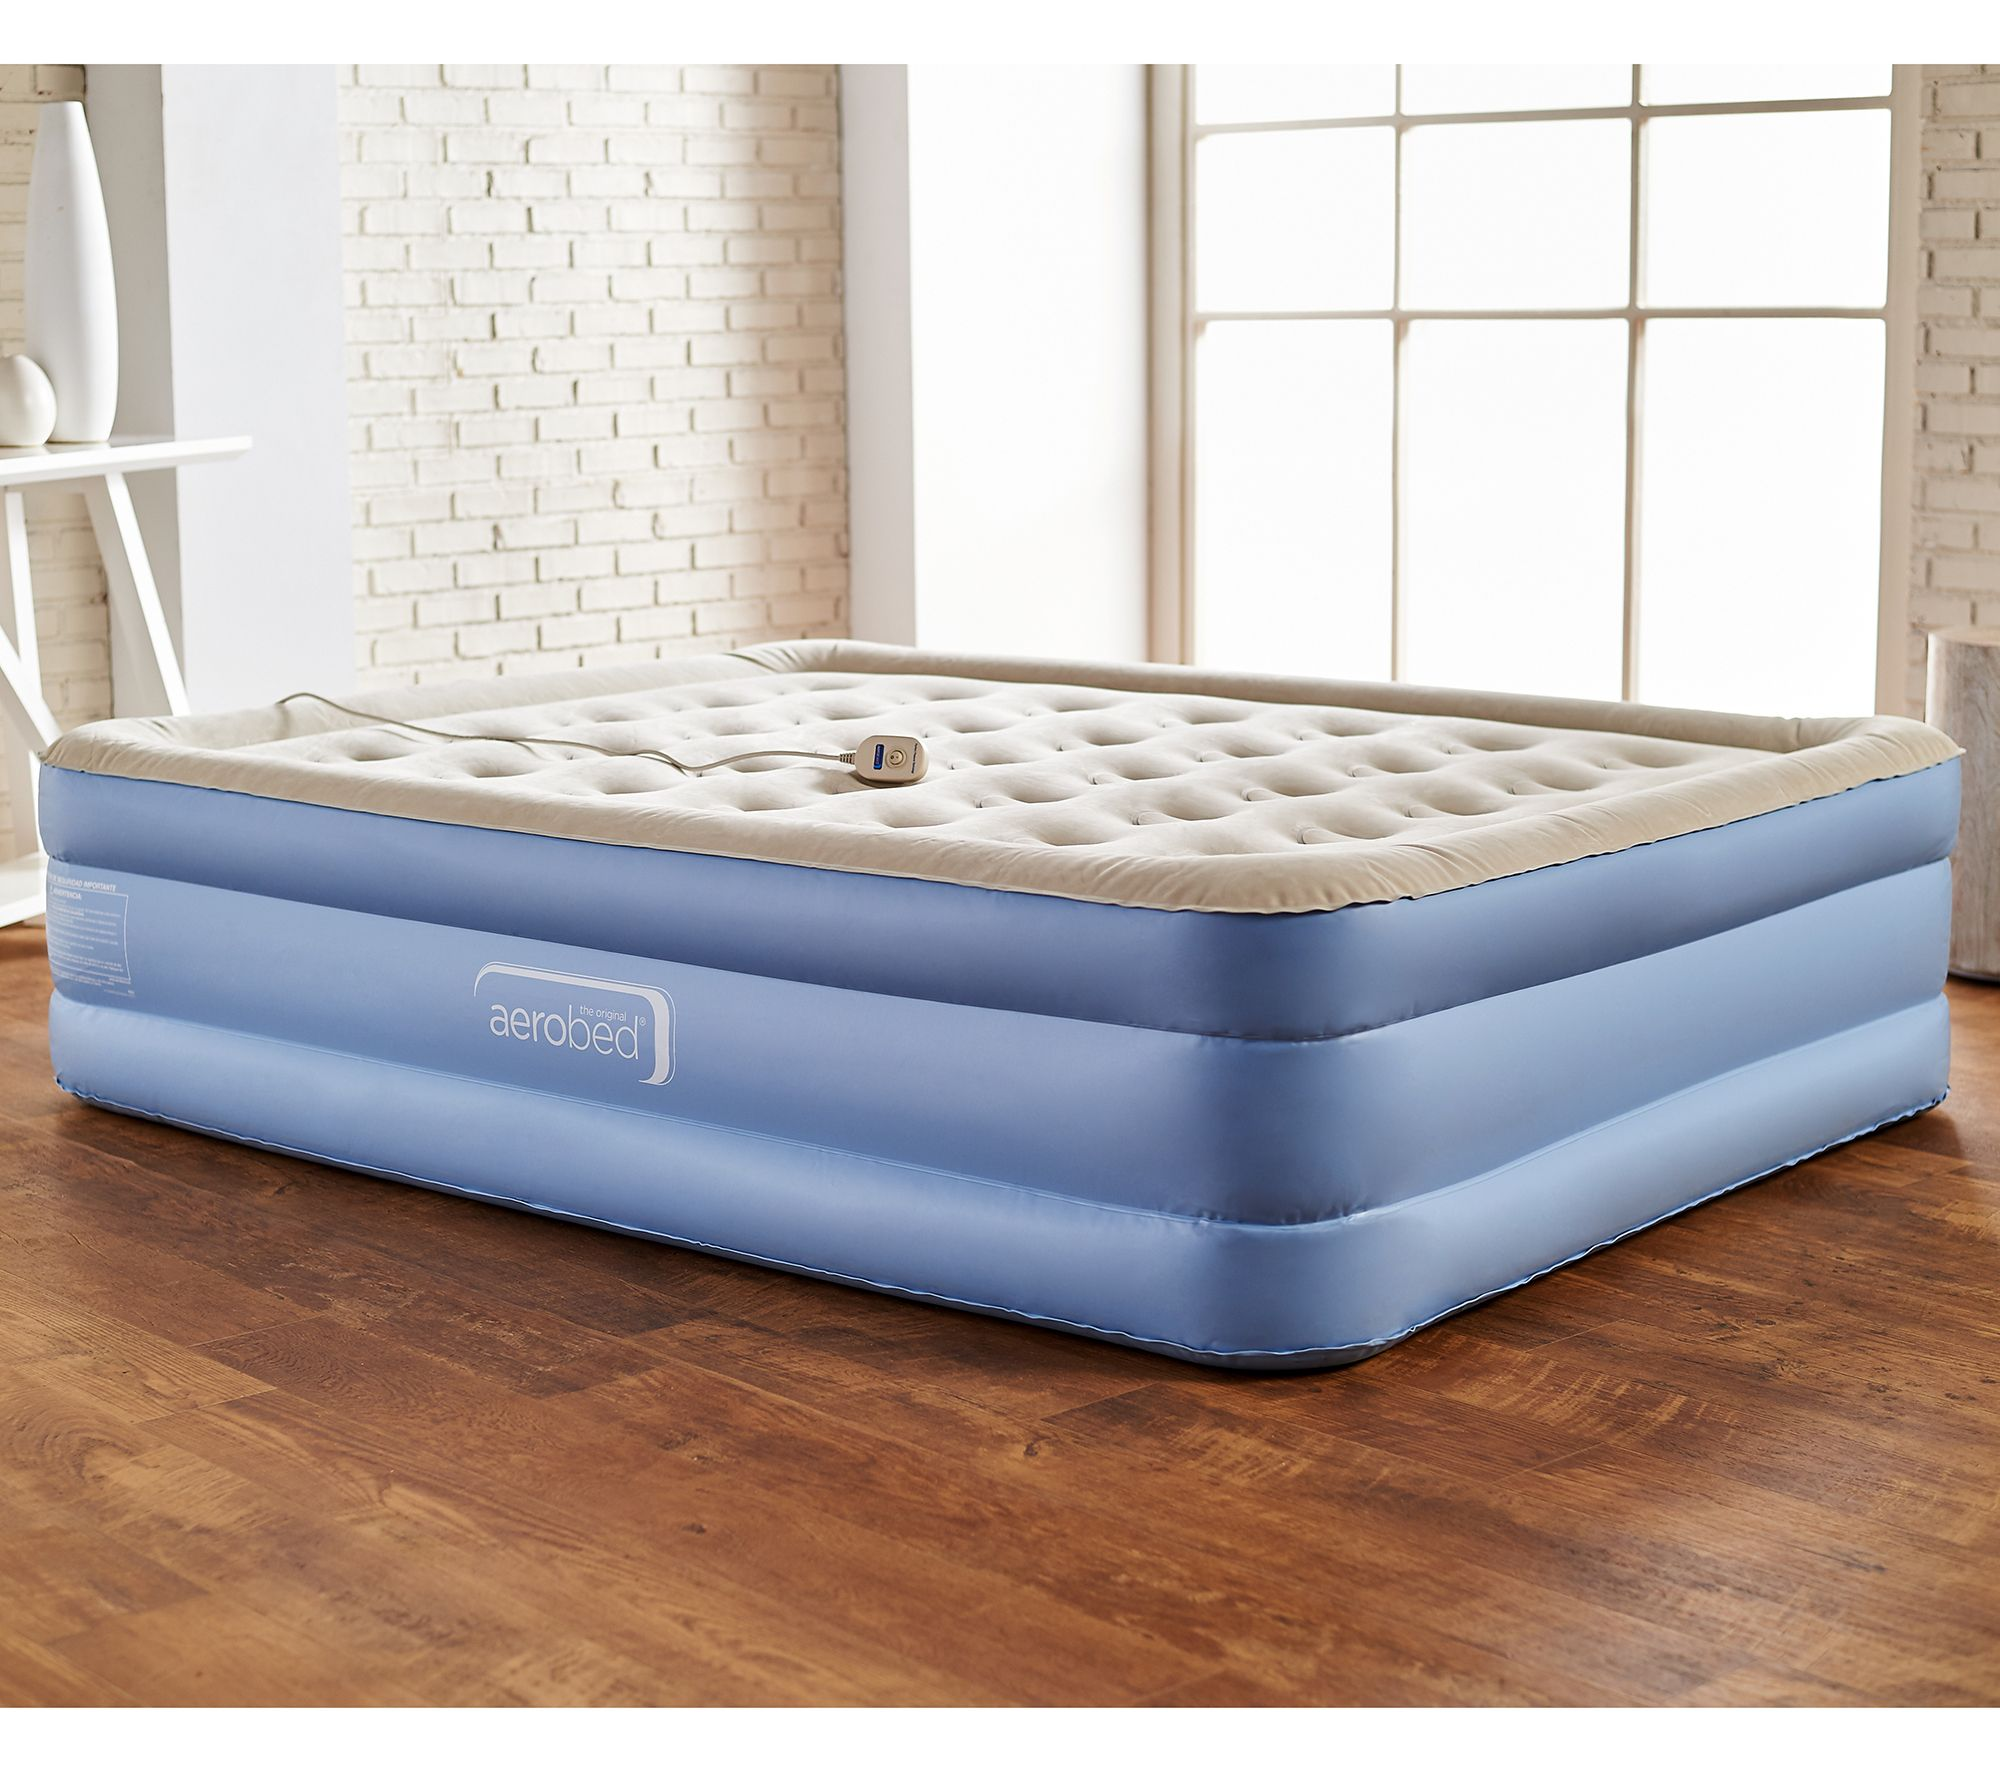 """aerobed queen 18"""" air mattress with antimicrobial sleep surface"""